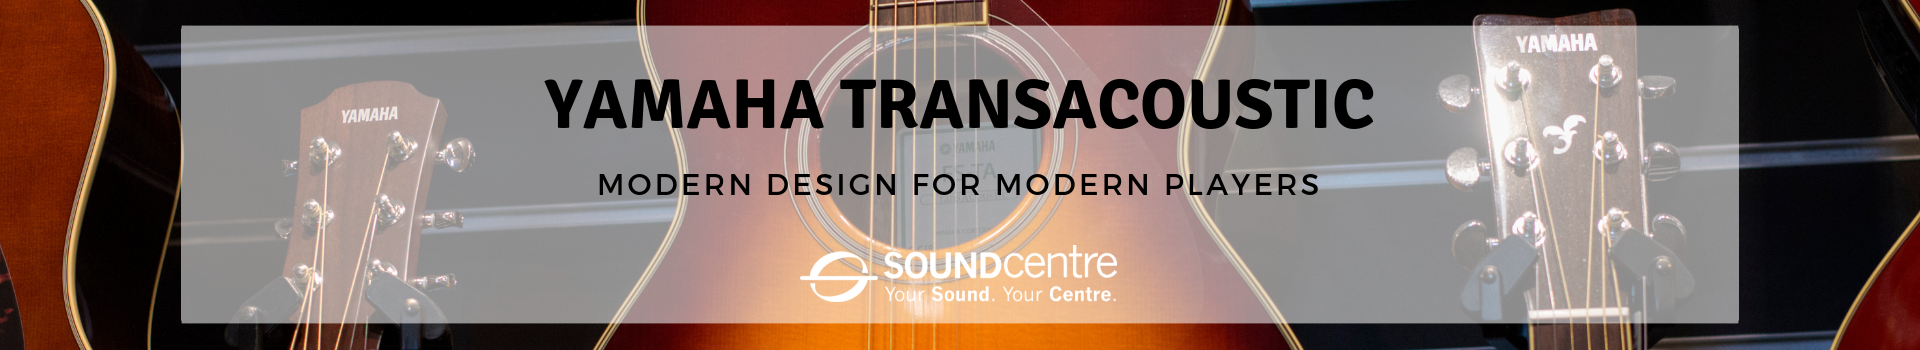 Reverb Built-In To A Guitar? Yamaha TransAcoustic At Sound Centre